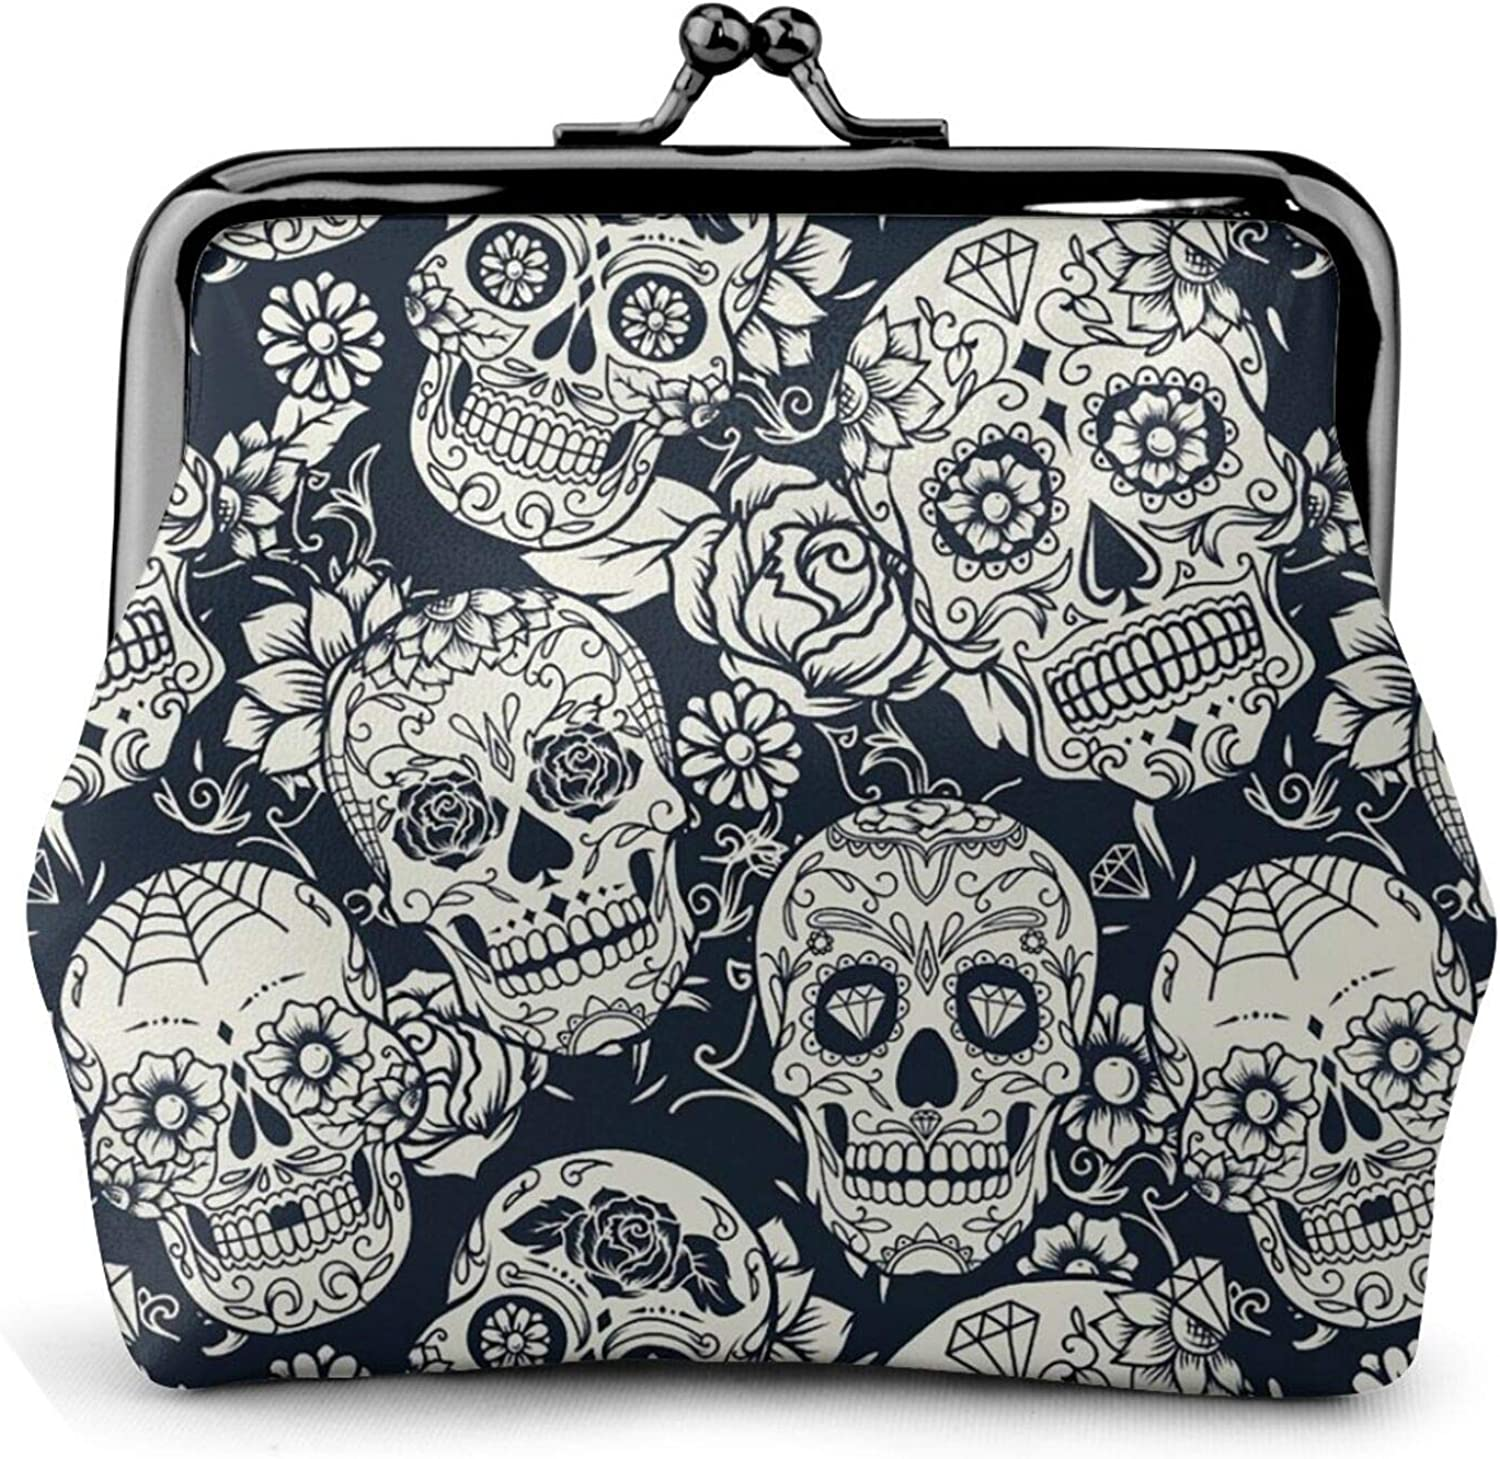 Day of The Dead Sugar Skull with Floral Buckle Coin Purses Women's Kiss-lock Closure Mini Vintage Pouch Leather Hasp Makeup Wallets Card Holder Cute for Men Women Girls Bags